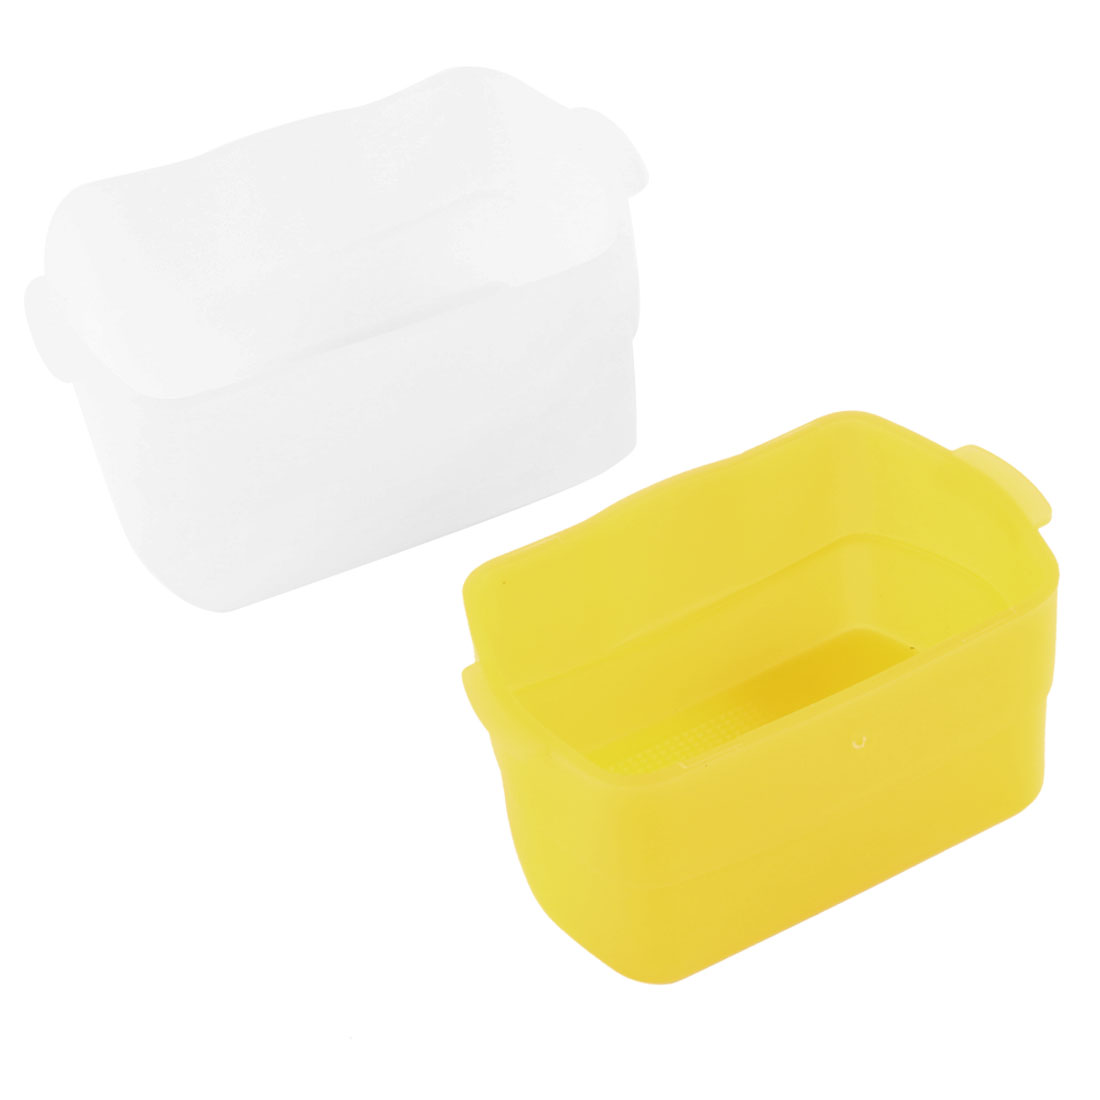 2 Pcs White Yellow Plastic Flash Bounce Diffuser Box for Canon 580EX II